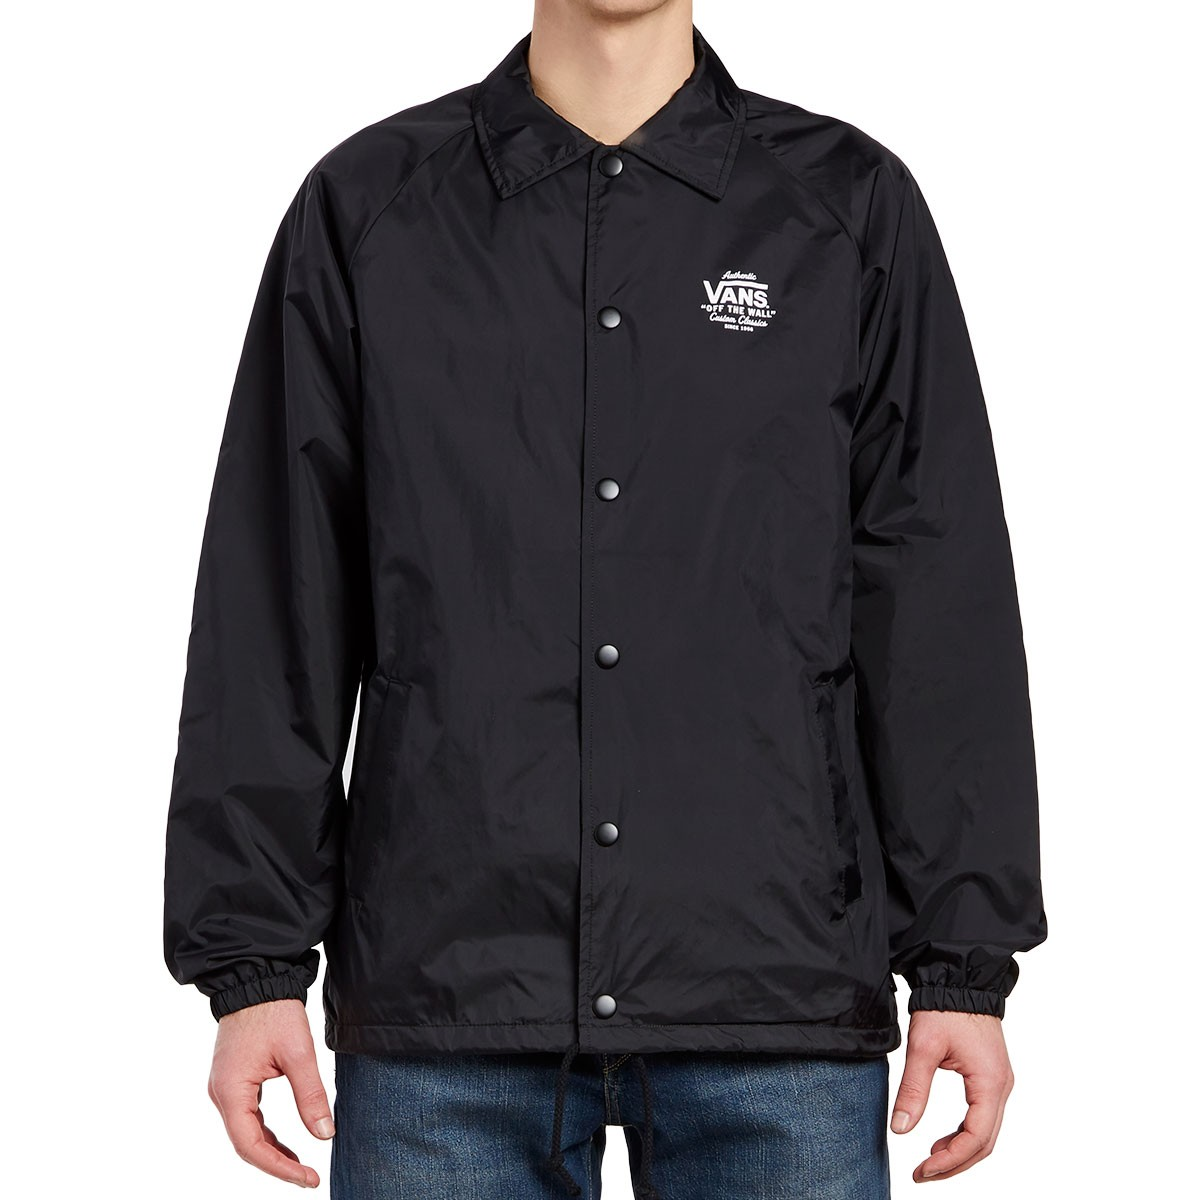 Vans Torrey Coaches Jacket Black White